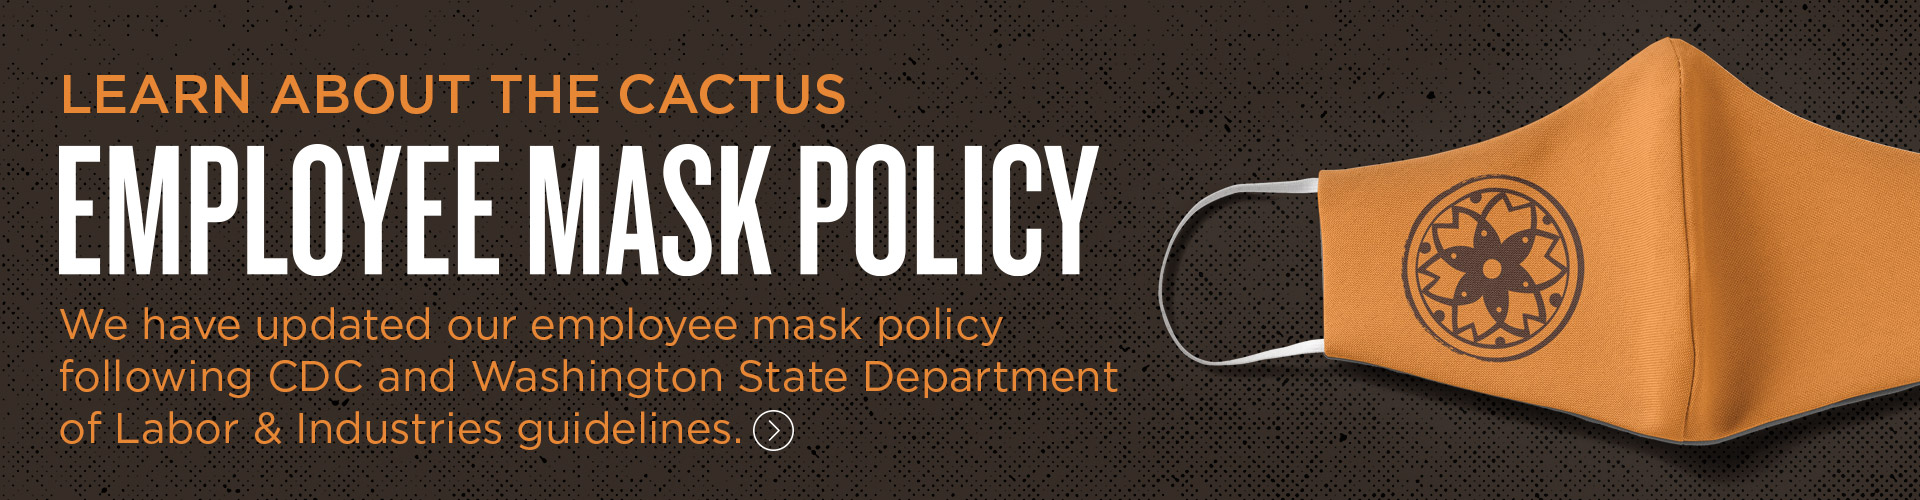 EMPLOYEE MASK POLICY AT CACTUS